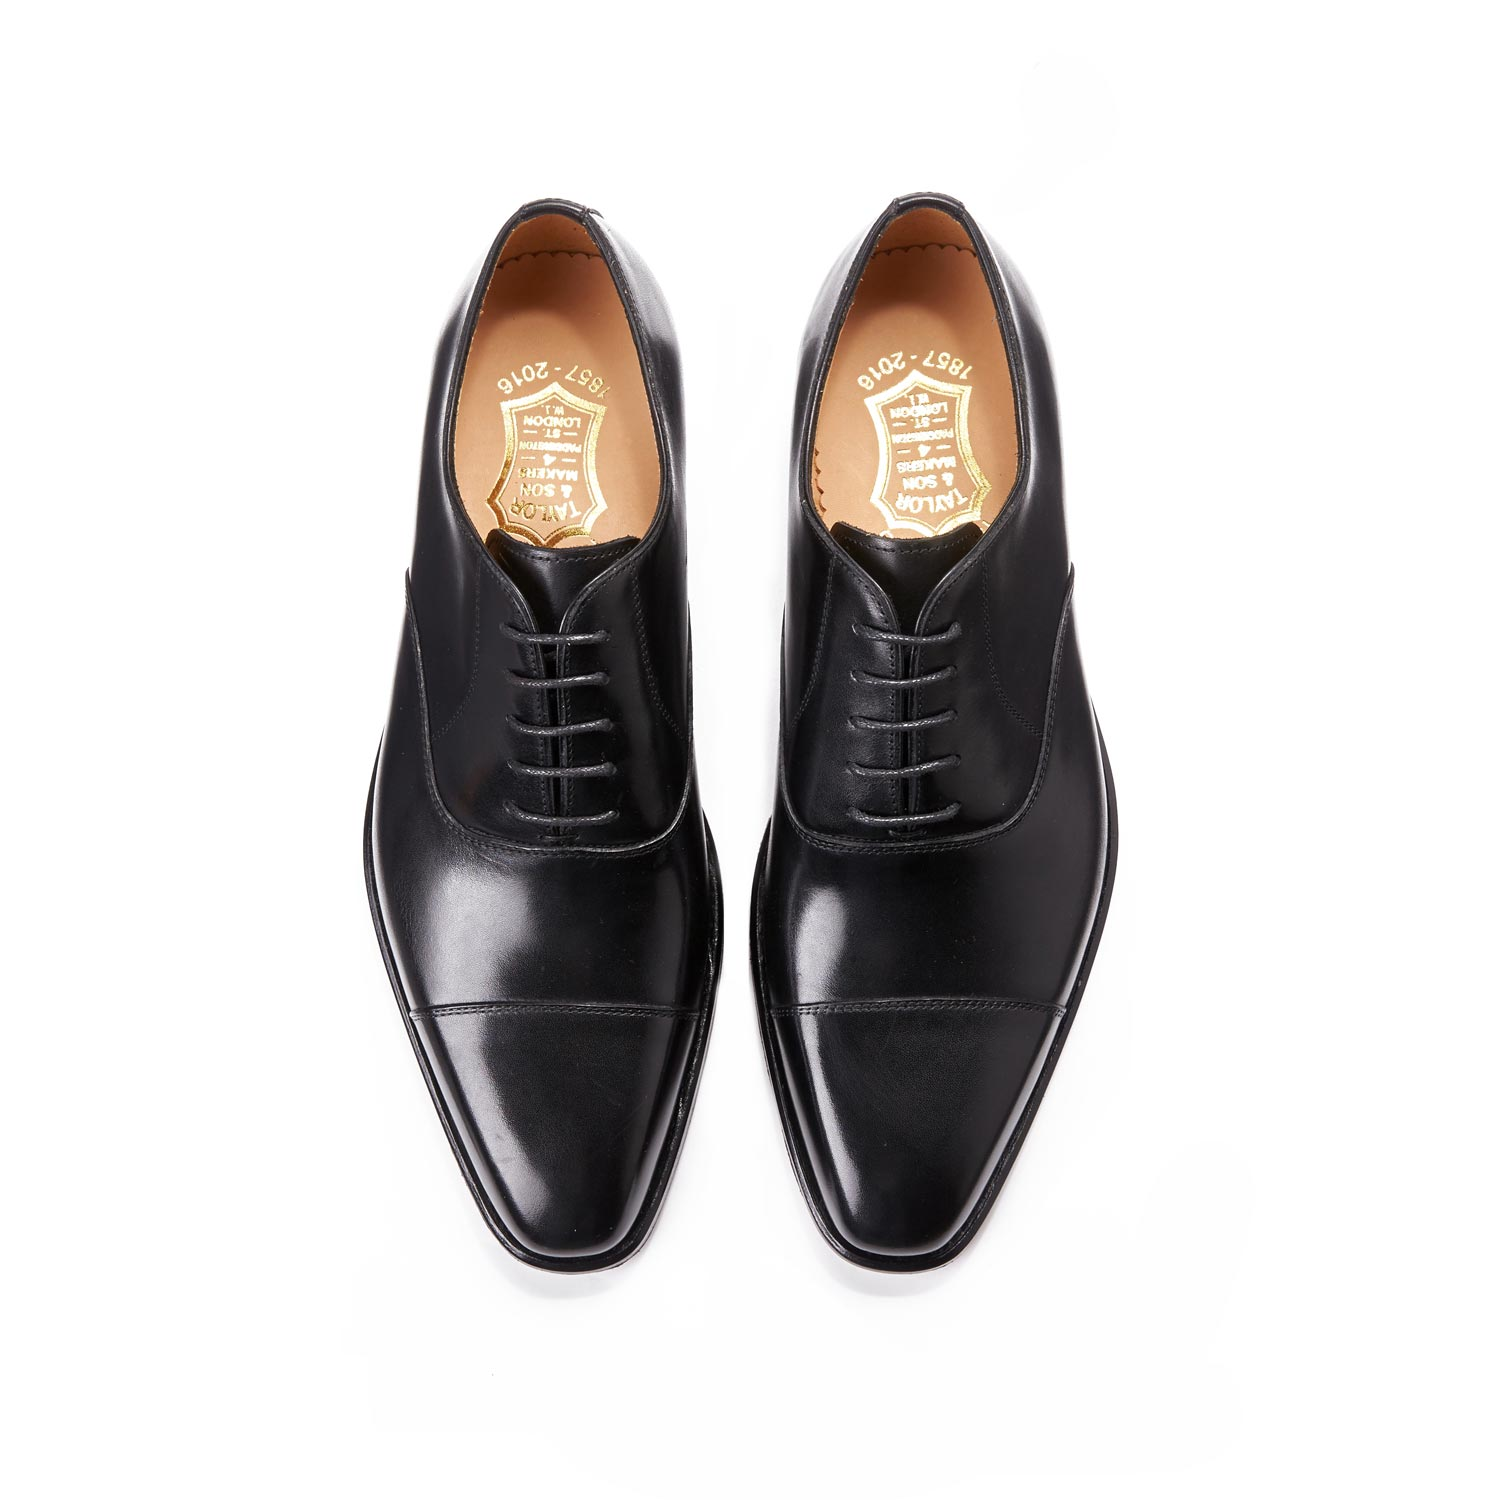 Men's Oxfords in black